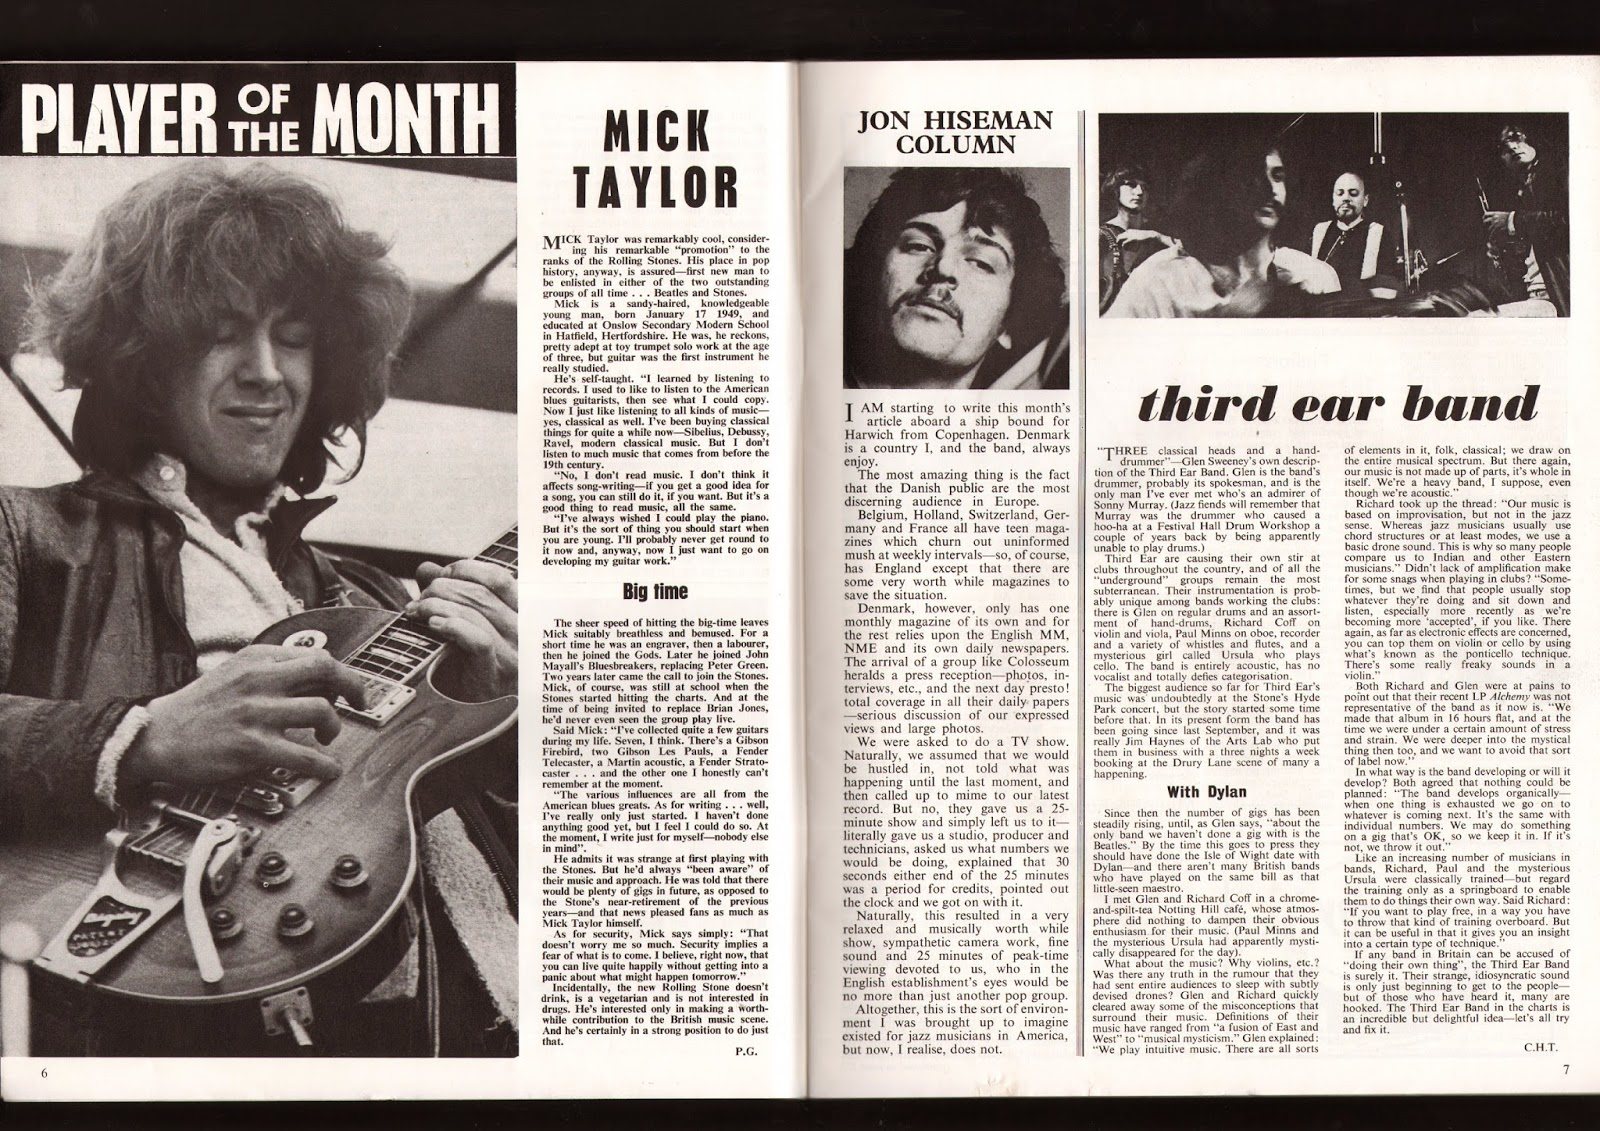 Ghettoraga glen sweeney talks about the teb music on zigzag 4 note in the same issue also an harvest ad for alchemy edgar brouthon bands wasa wasa based on a picture of stonehenge malvernweather Image collections